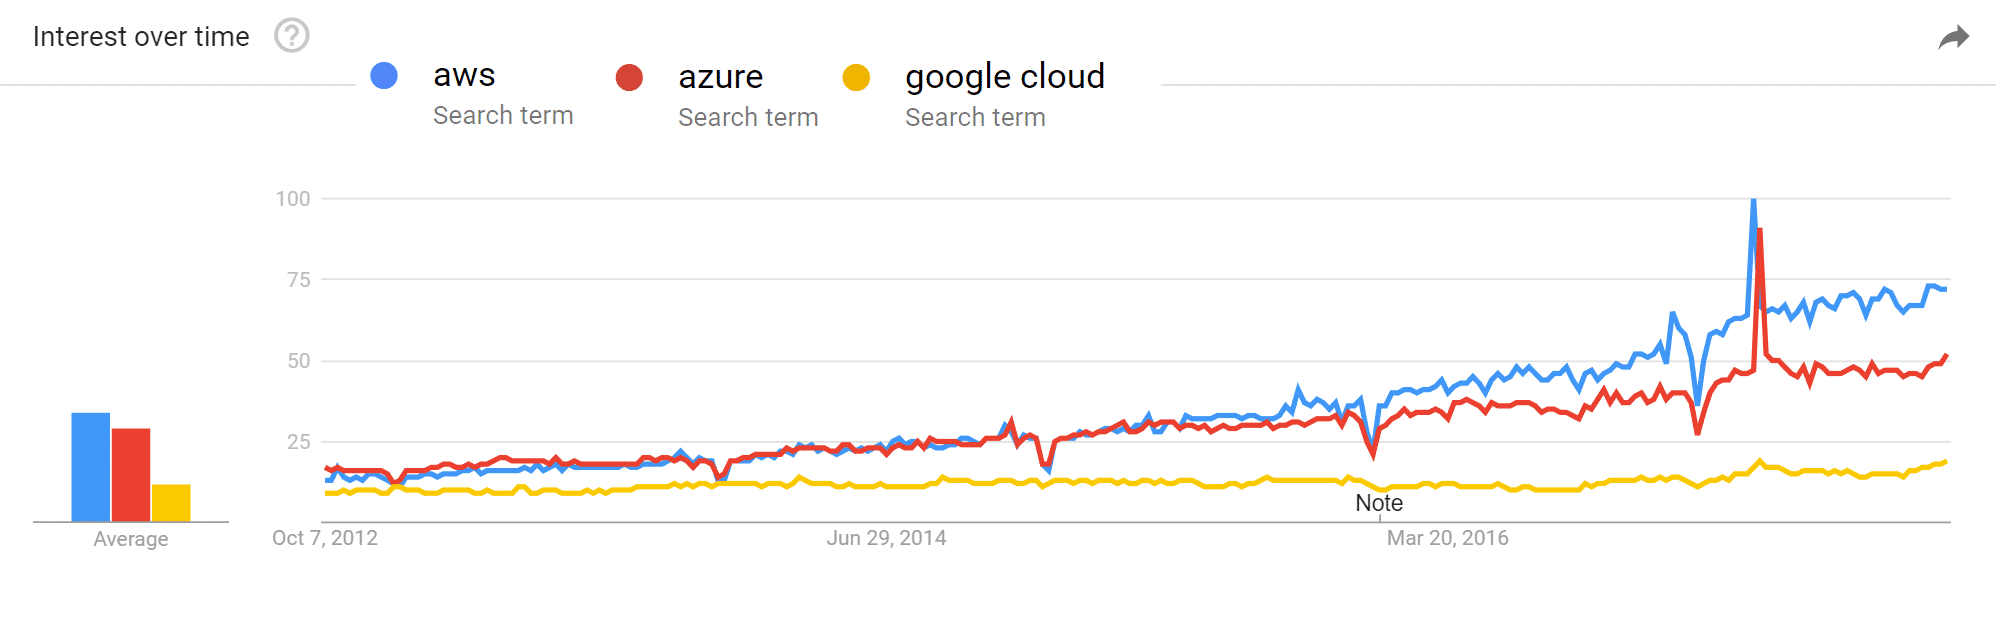 Google Trends over cloud computing providers